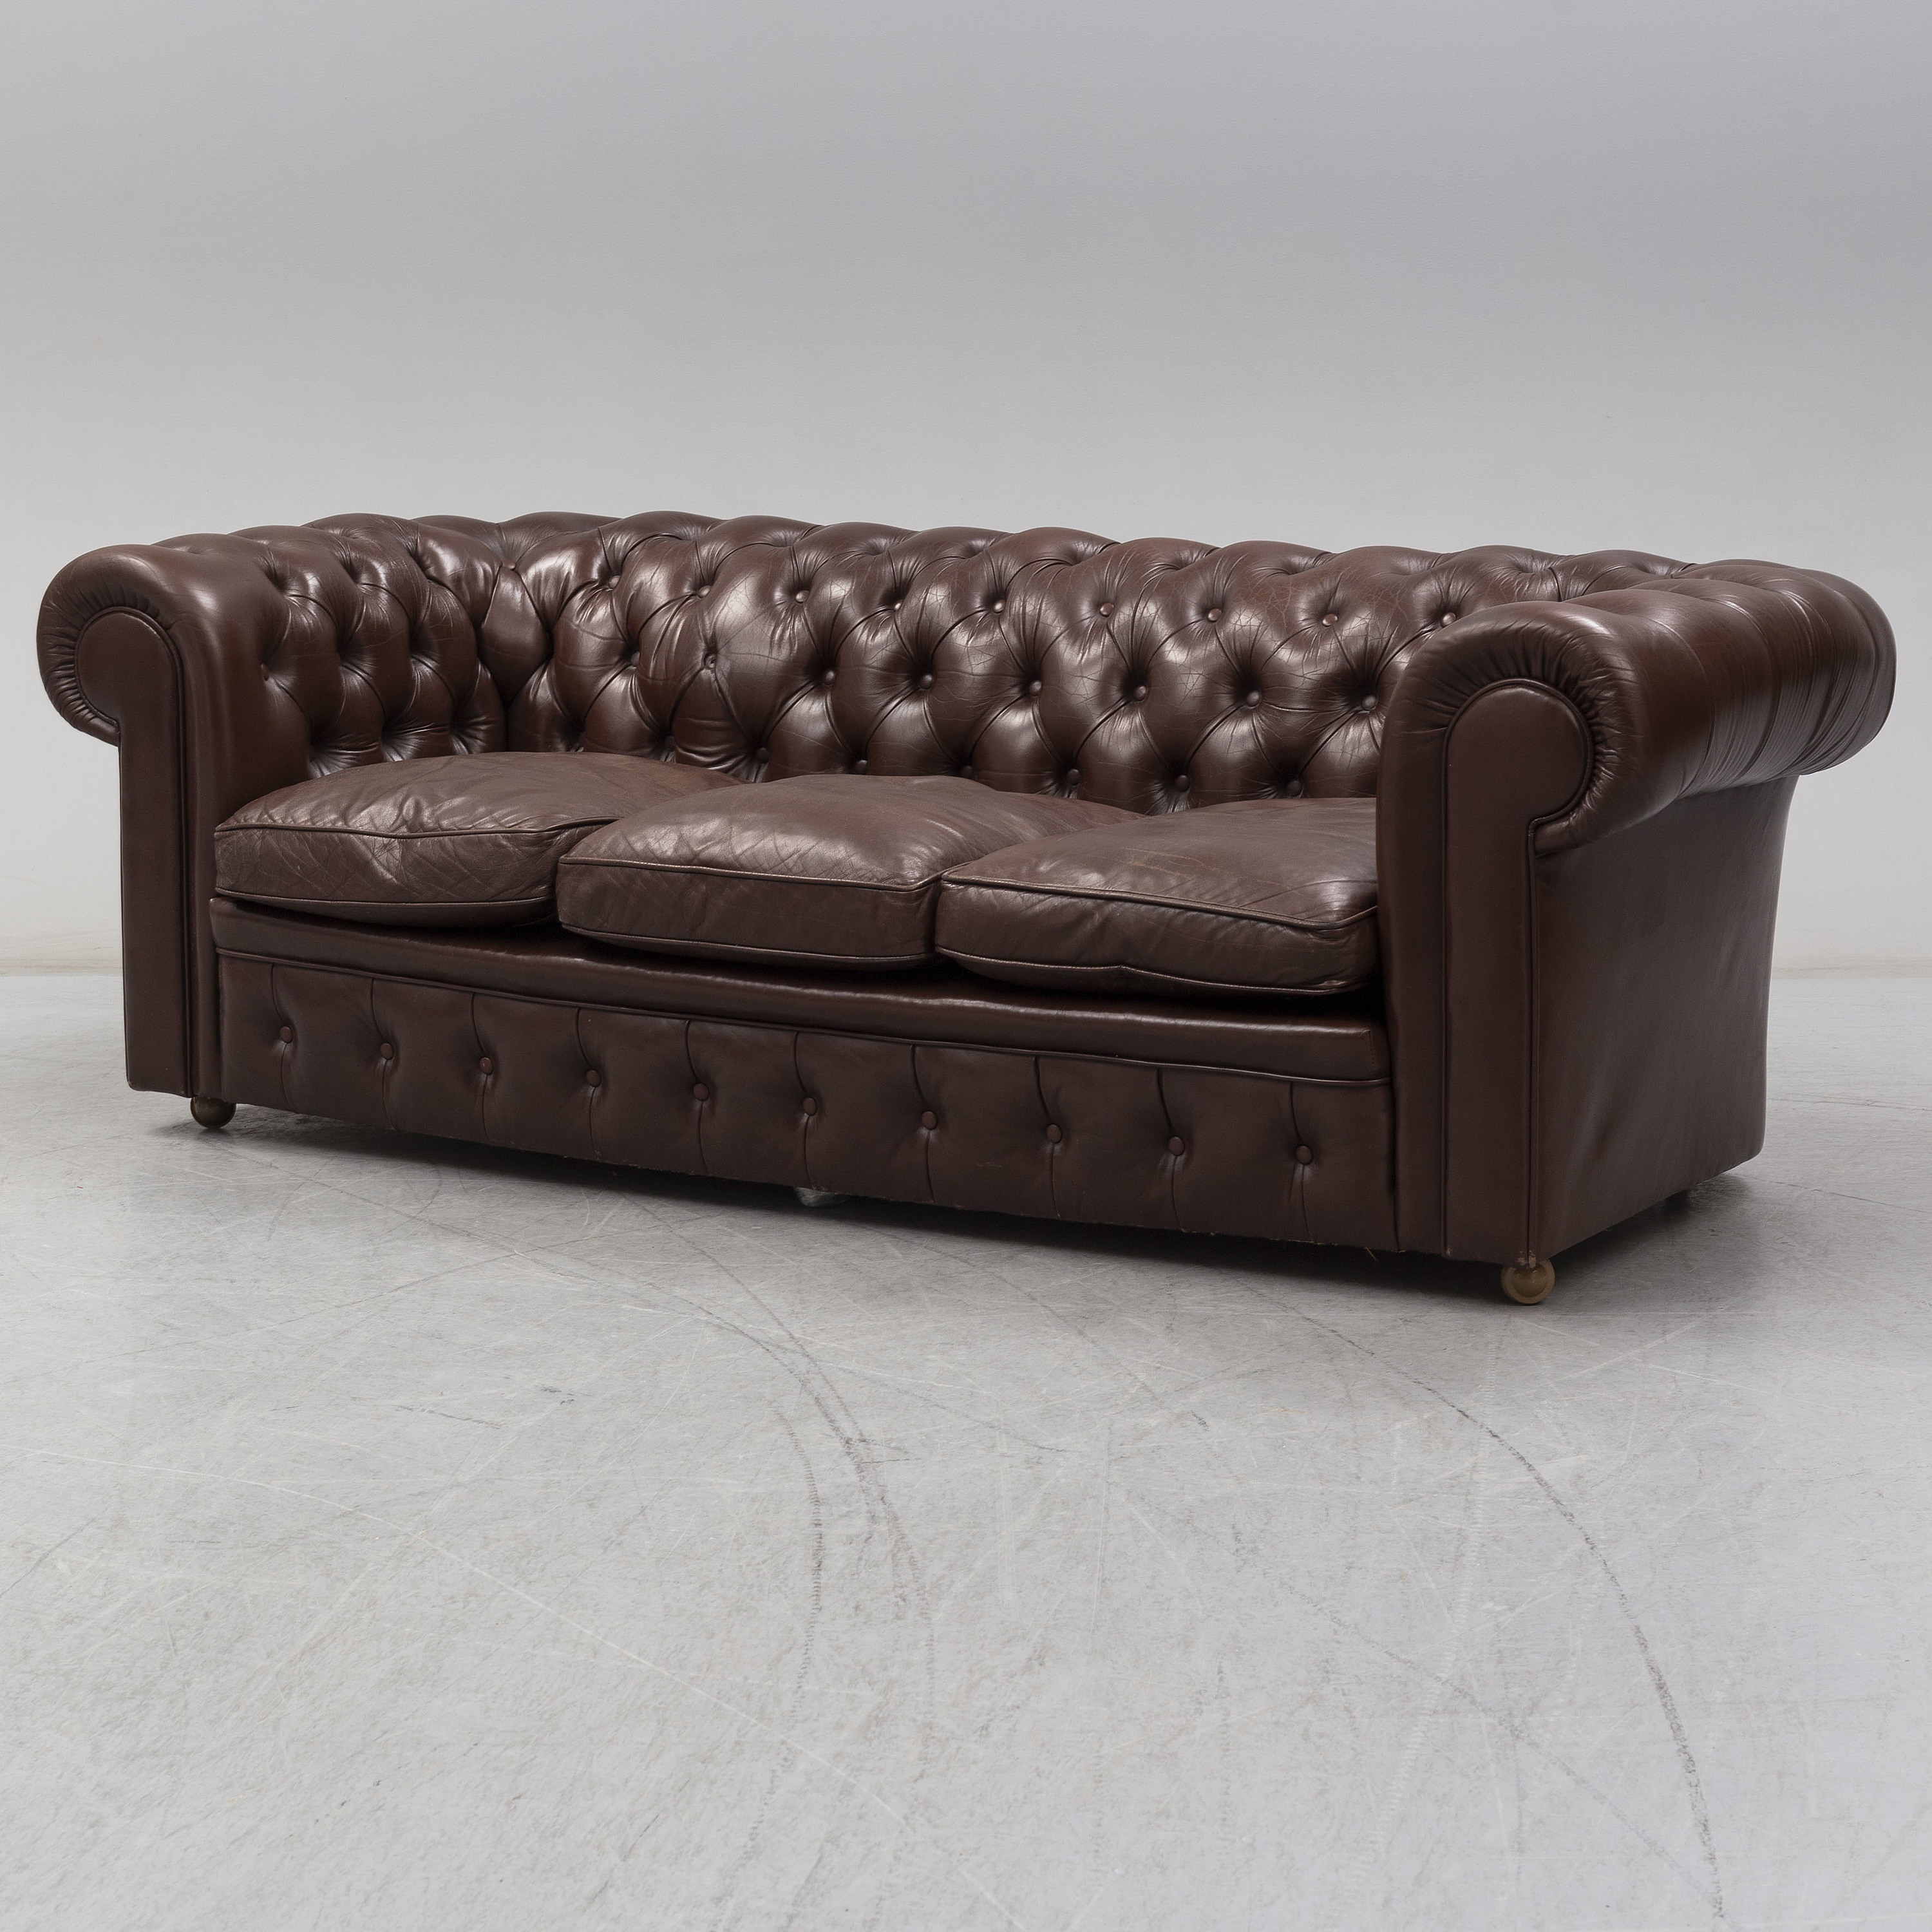 A Second Half Of The 20th Century Sofa Artistic Upholstry